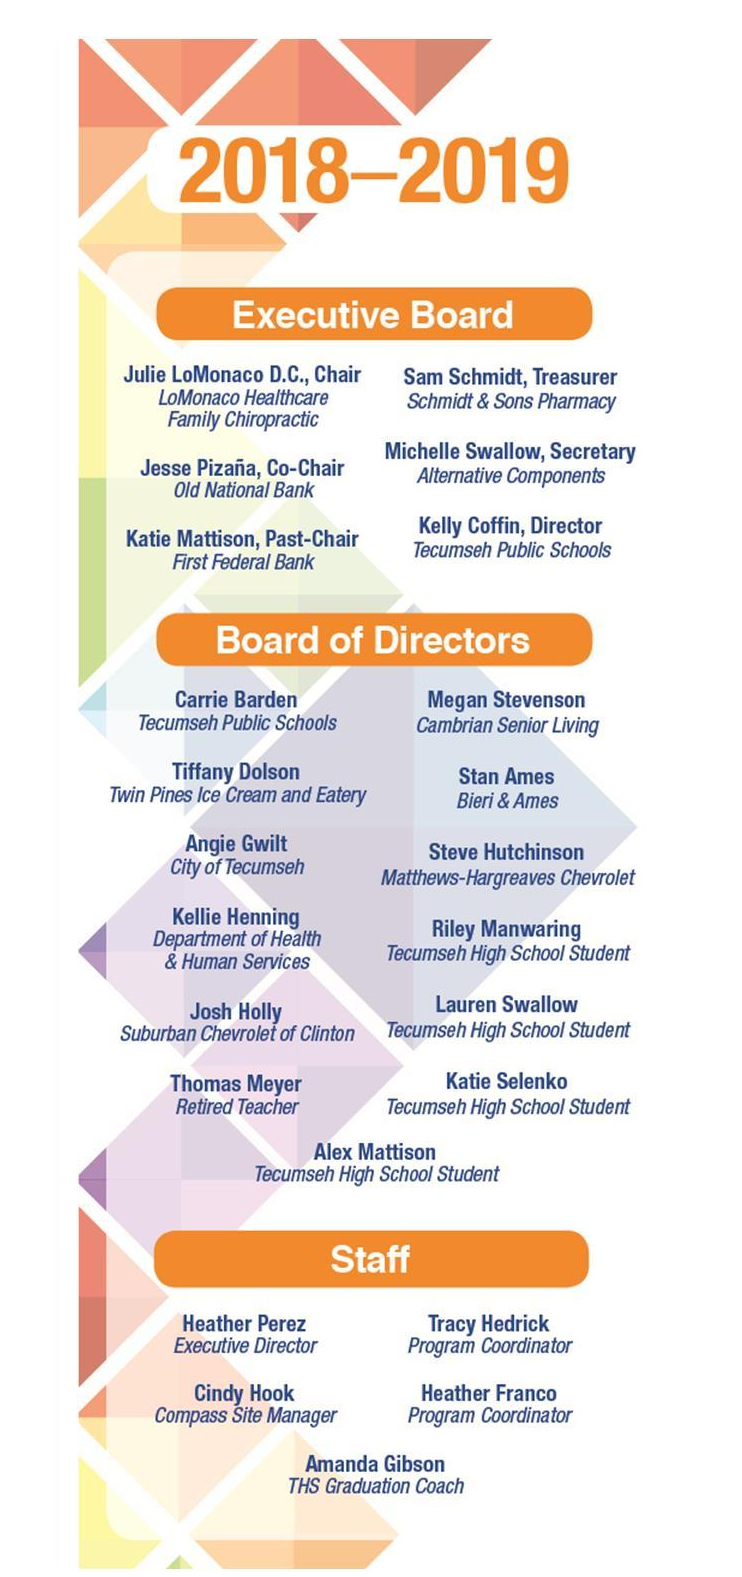 2019-clc-website-board-of-directors-staff-image.jpg